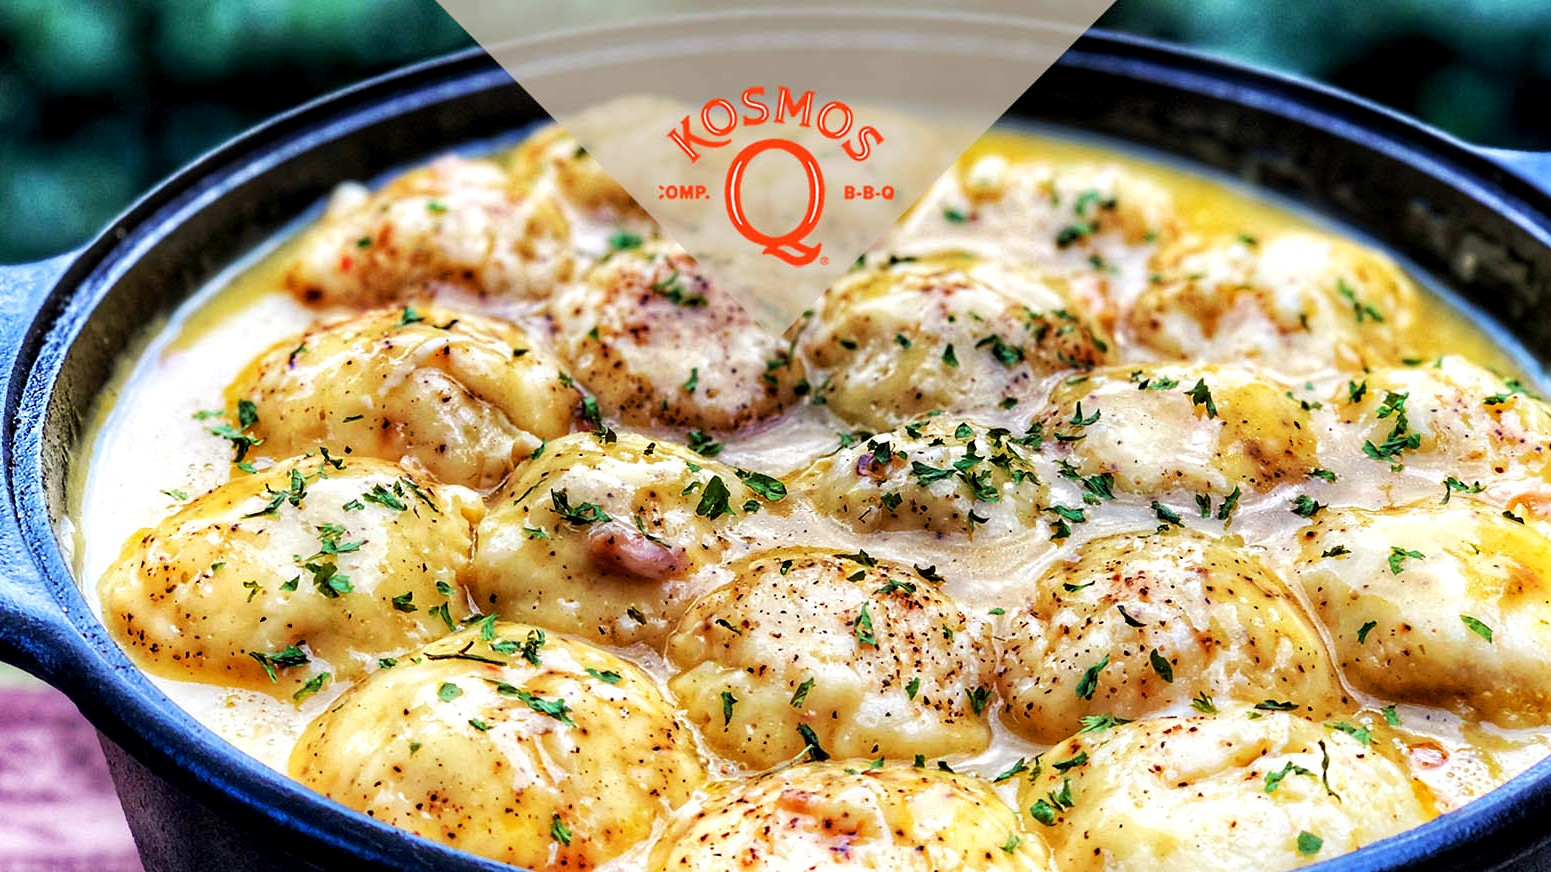 Image of Smoked Chicken and Dumplings